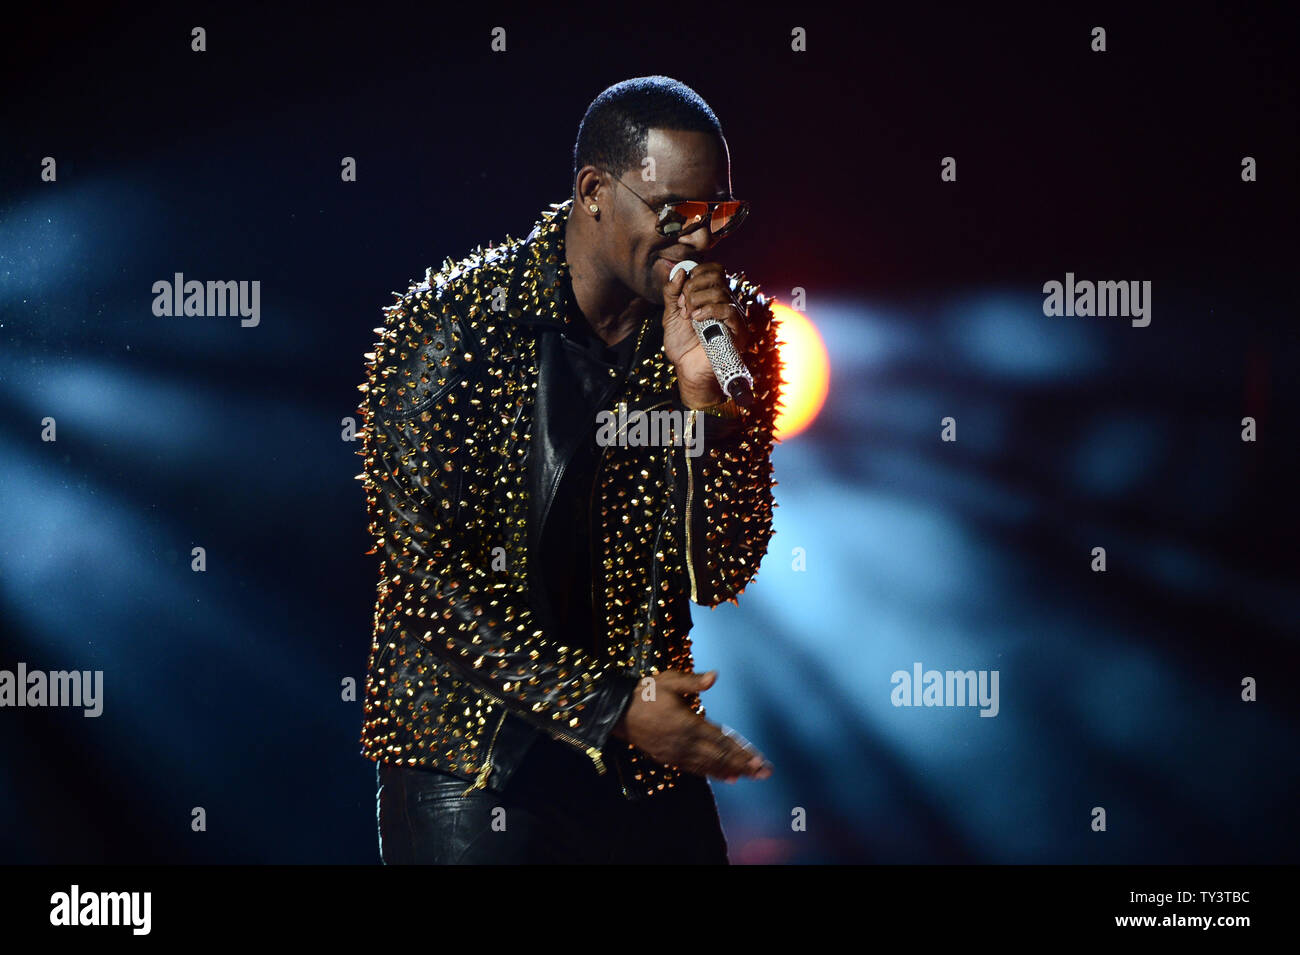 Singer R Stock Photos & Singer R Stock Images - Alamy